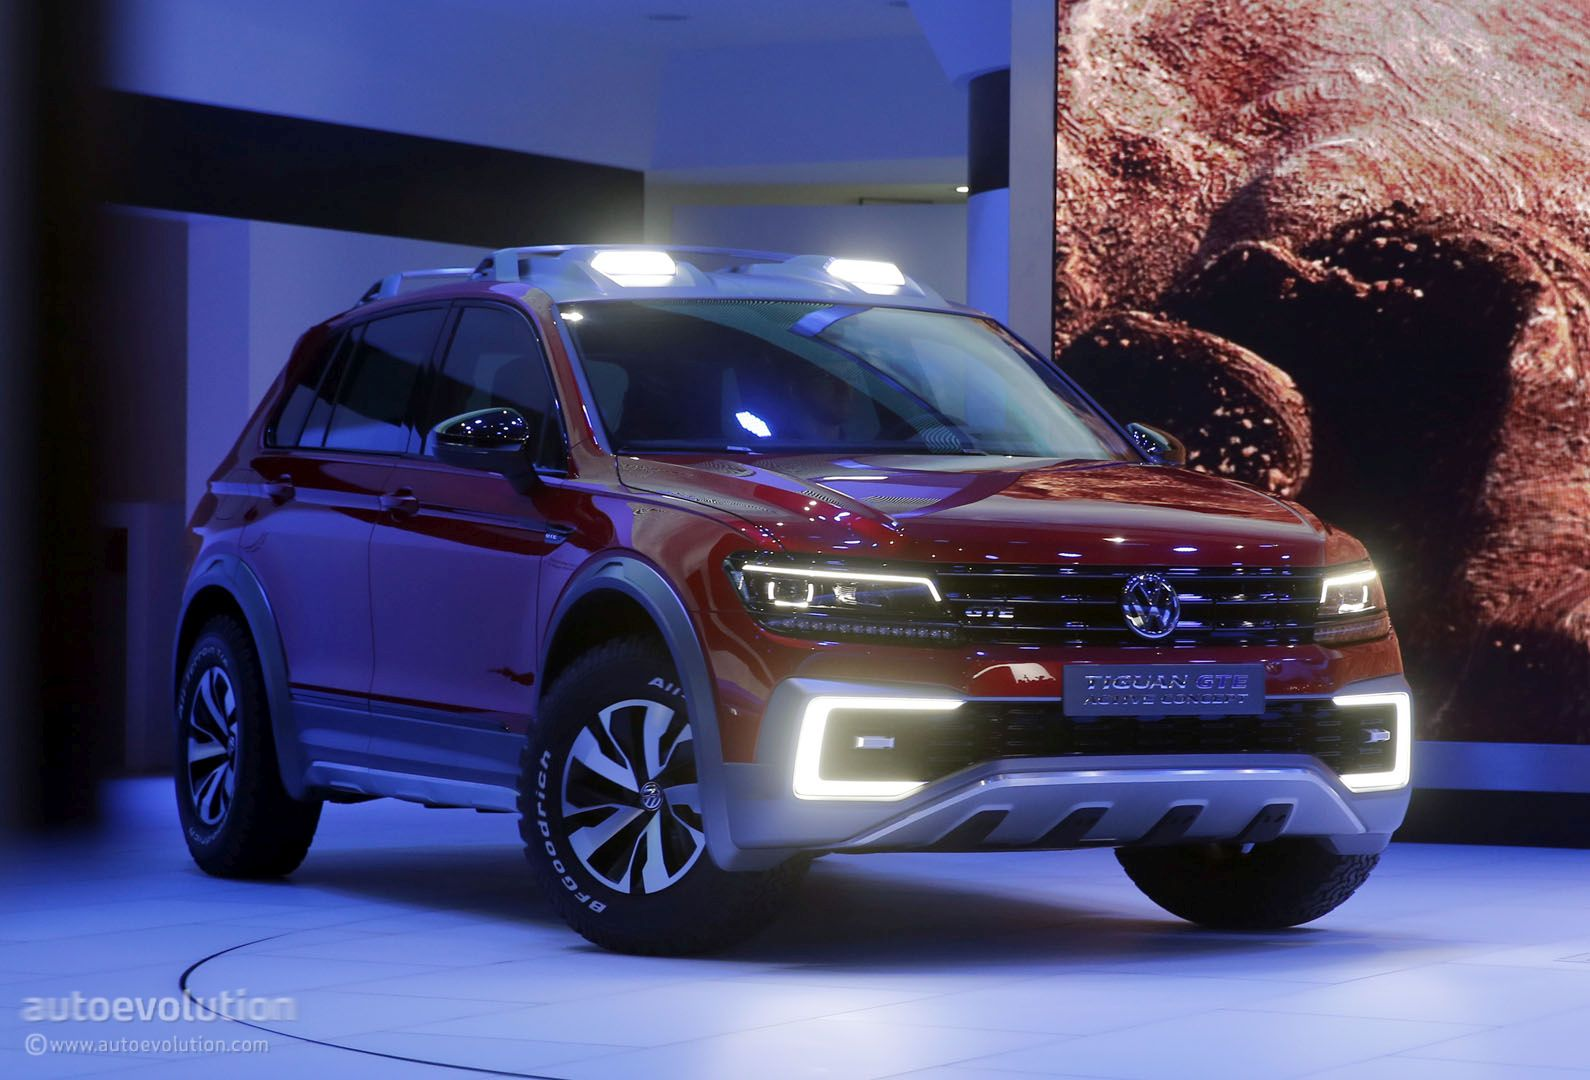 Volkswagen Tiguan Gte Active Concept Is A Rwd Based Sporty